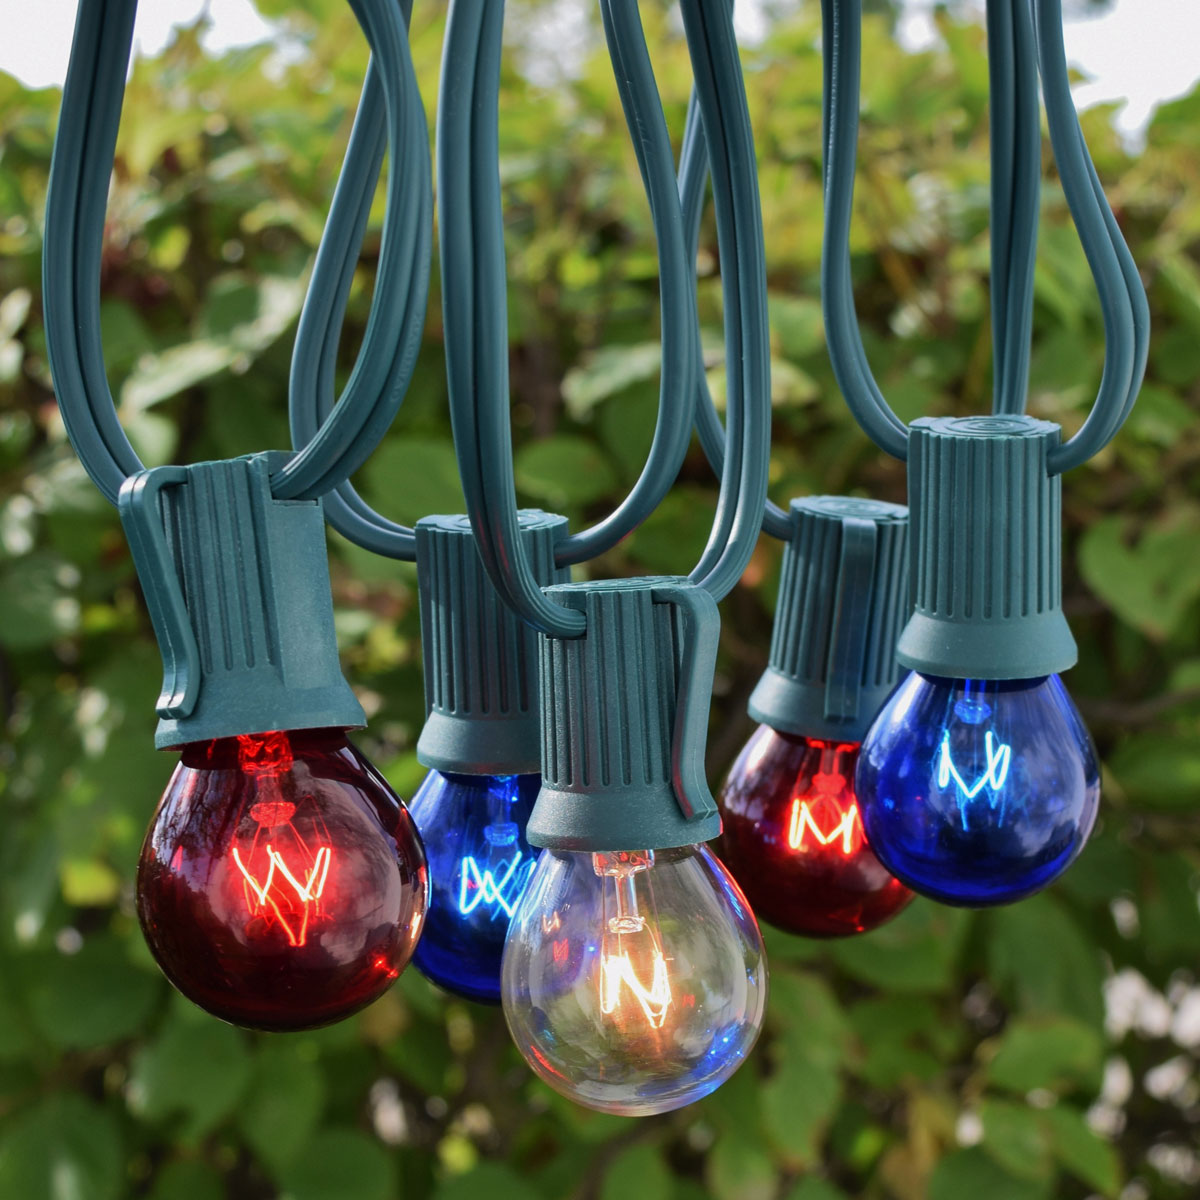 Patriotic String Lights Outdoor : 50 C9 Patriotic Globe String Lights - Green Wire